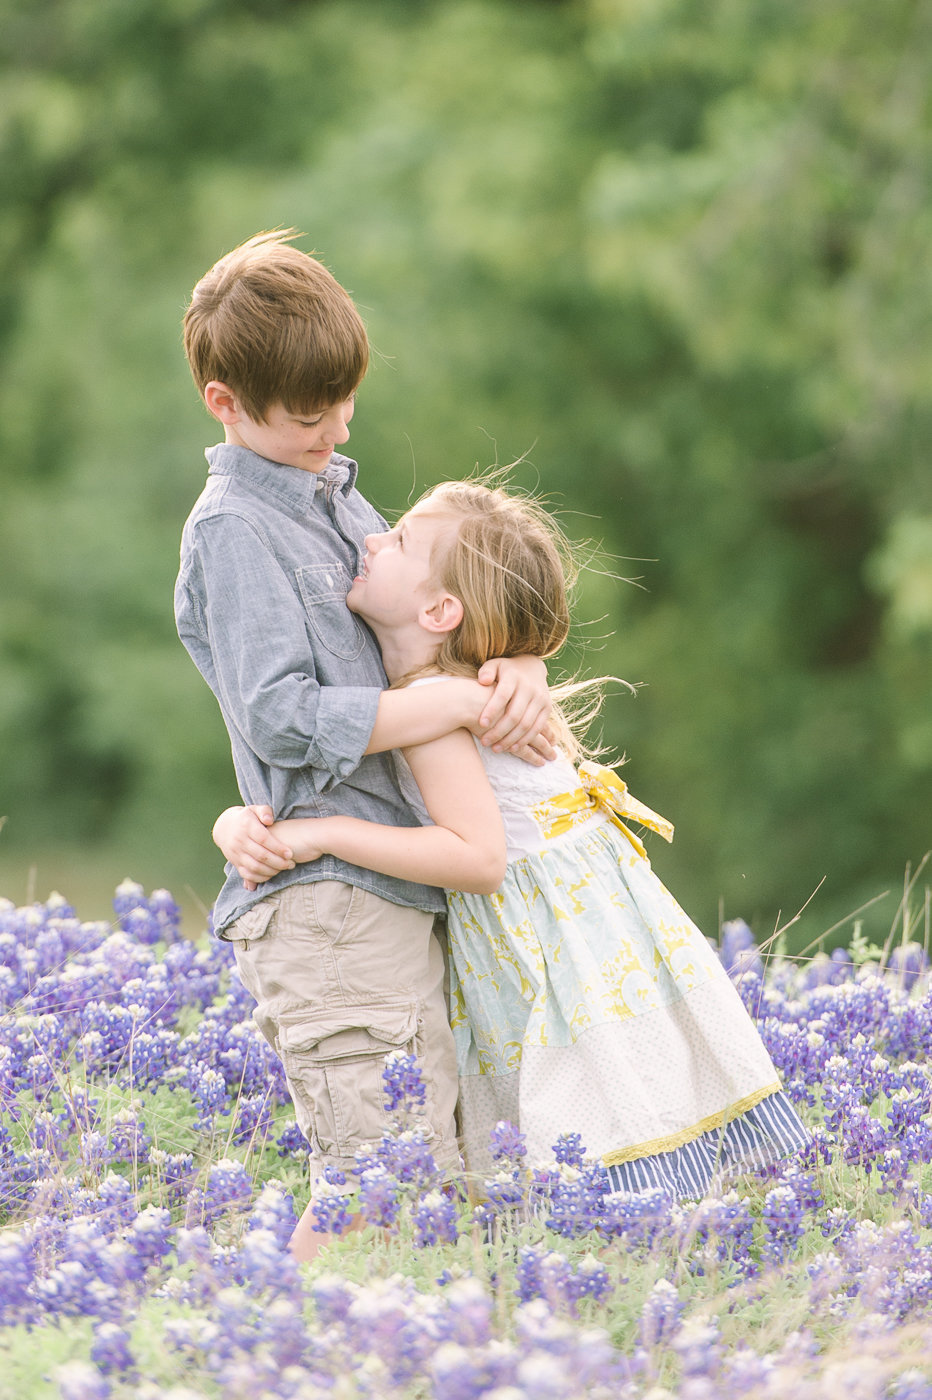 bluebonnet-texas-family-portrait-photographer-3